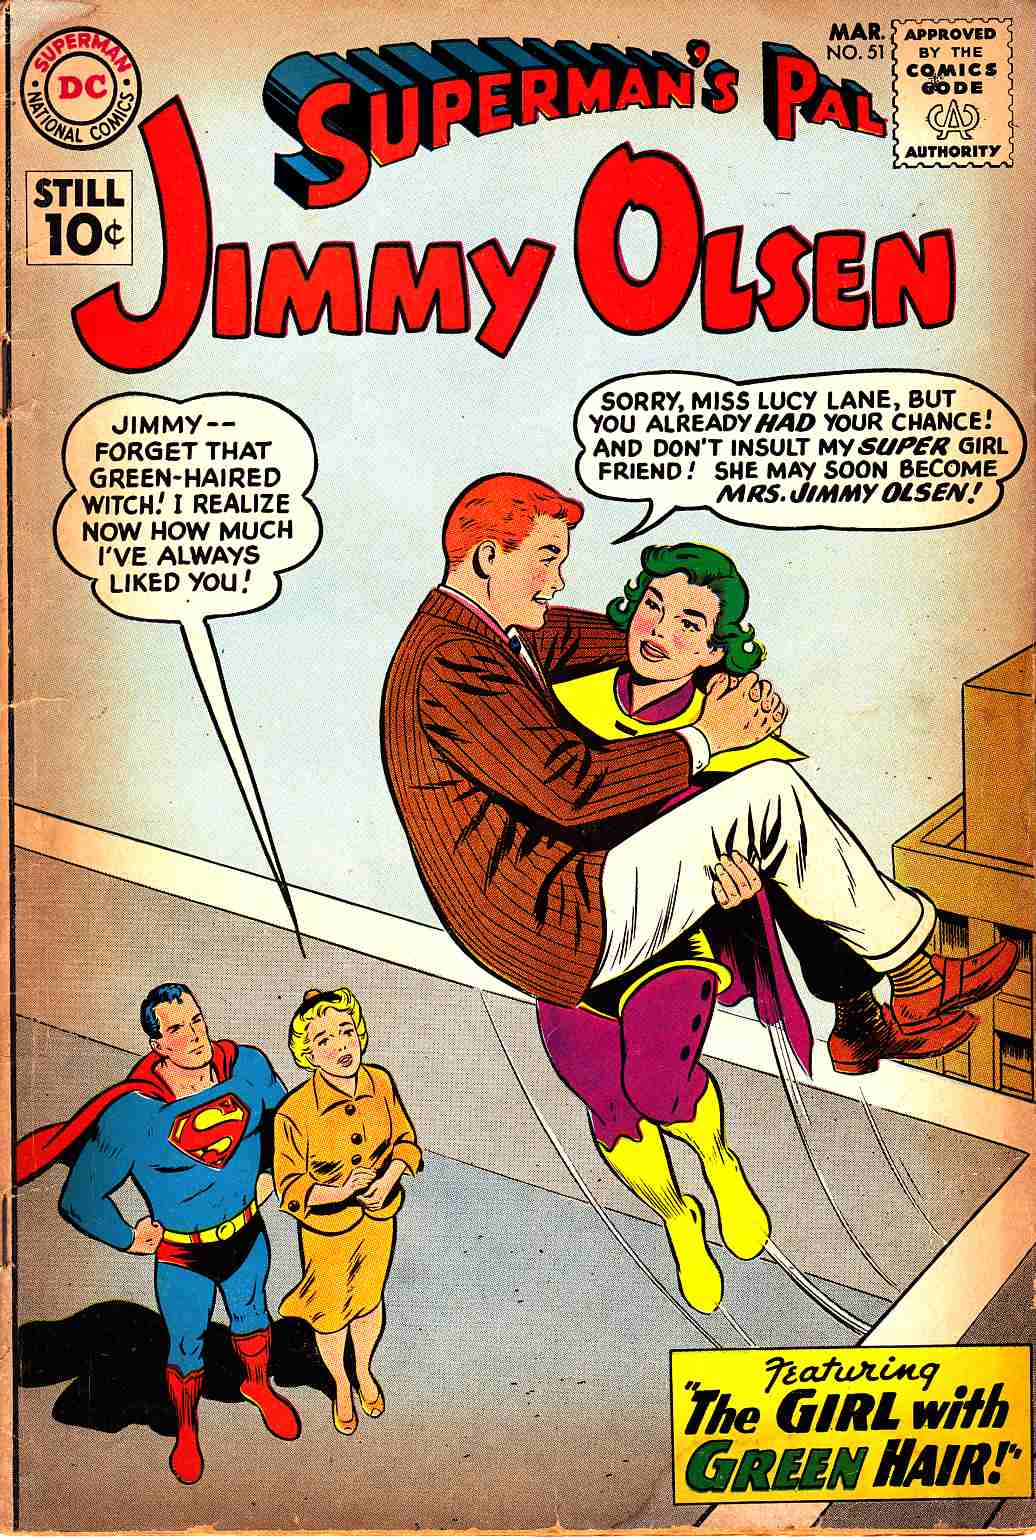 Image result for Jimmy Olsen